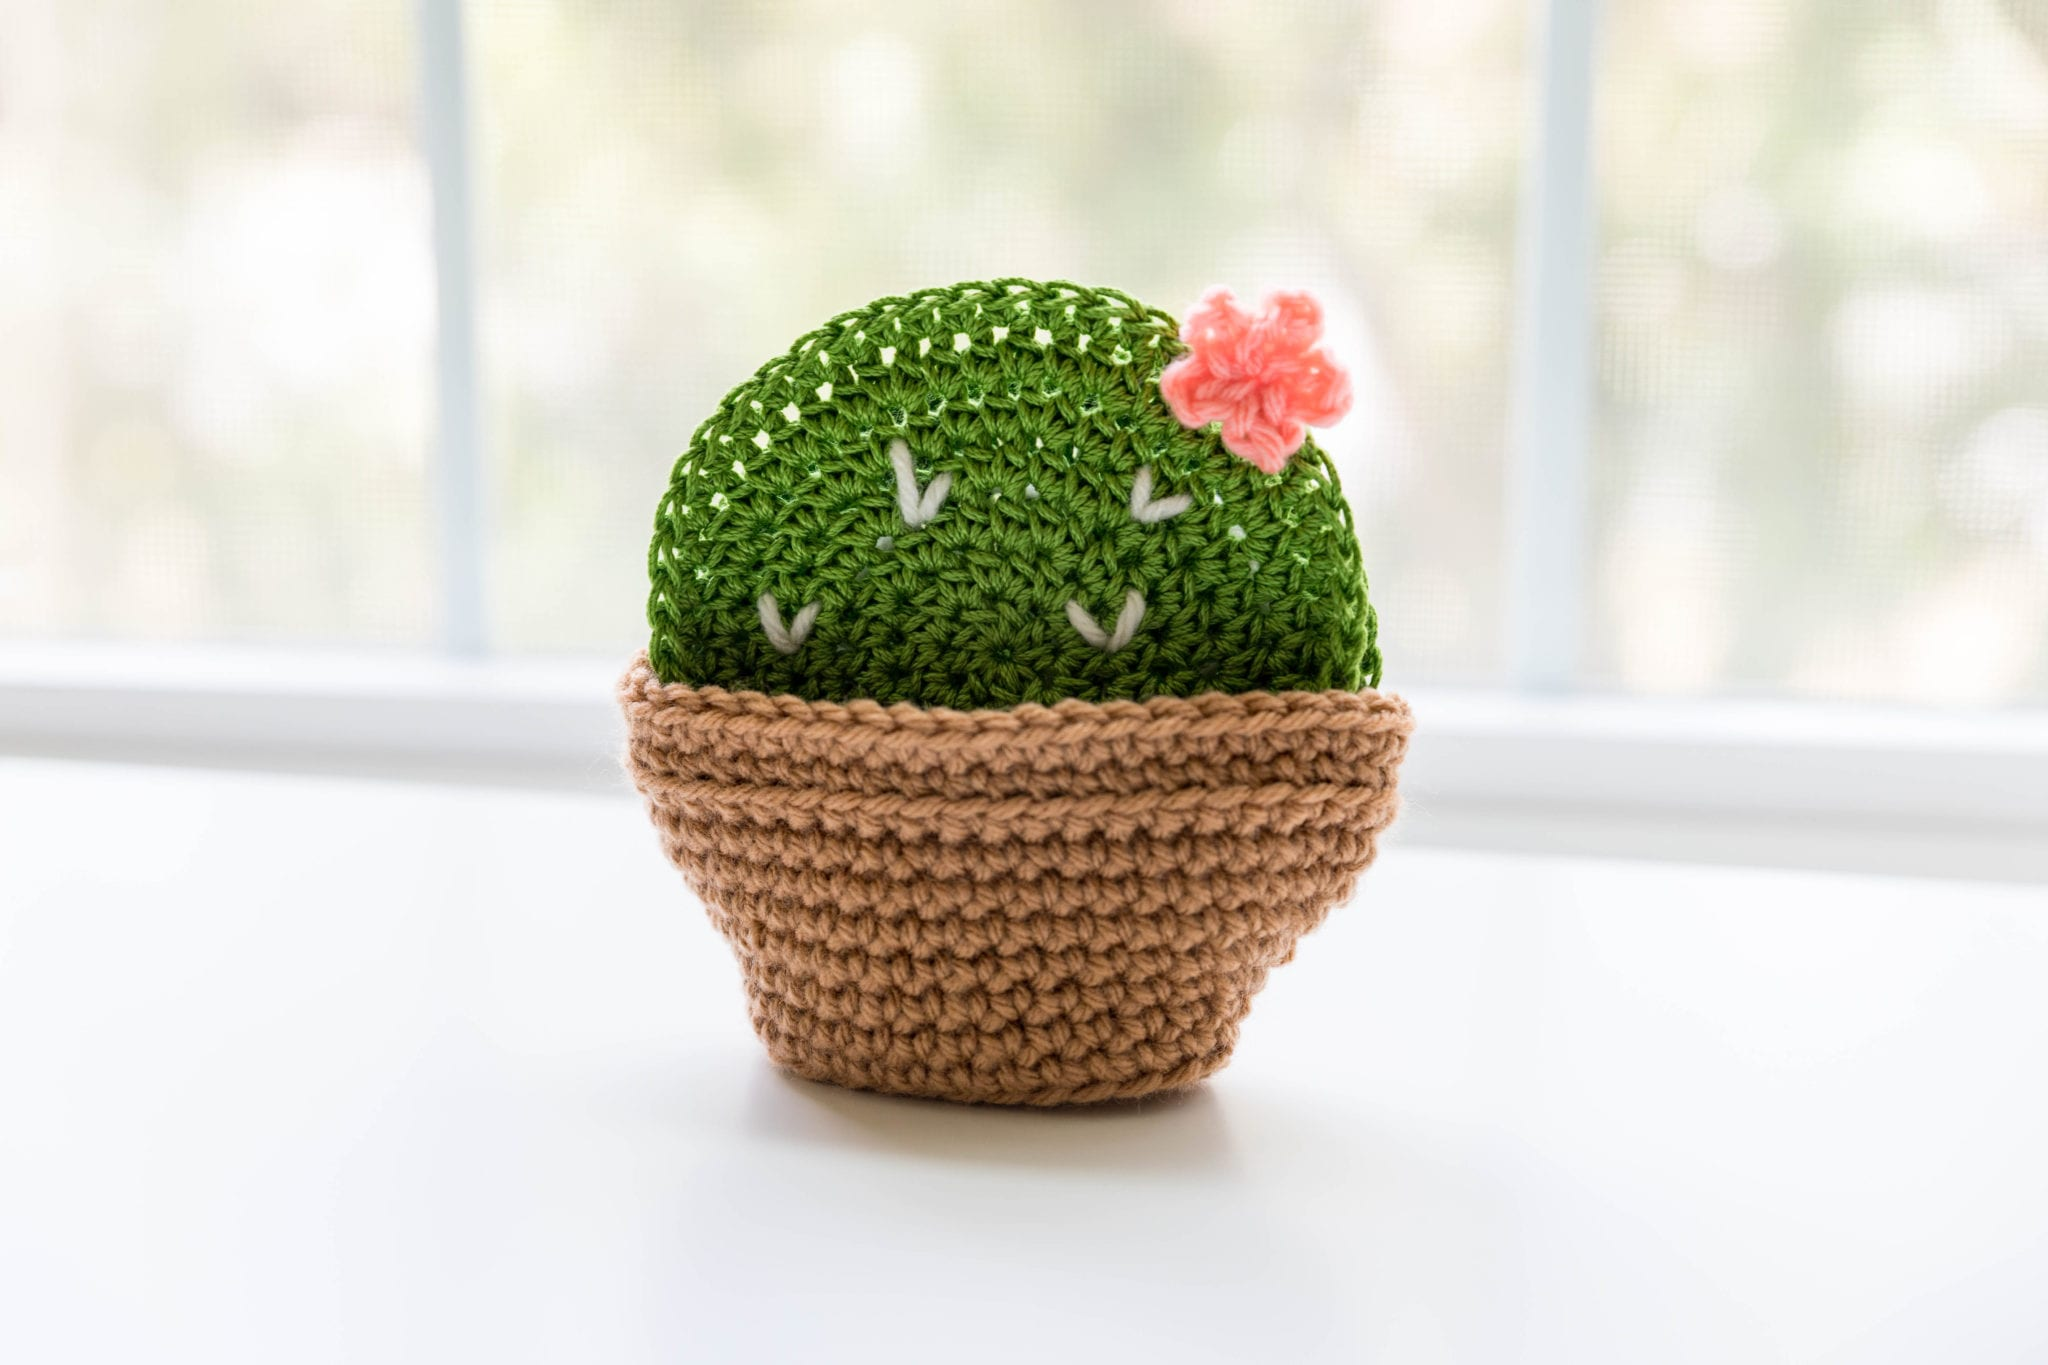 Blooming cactus amigurumi pattern - Amigurumi Today | 1365x2048